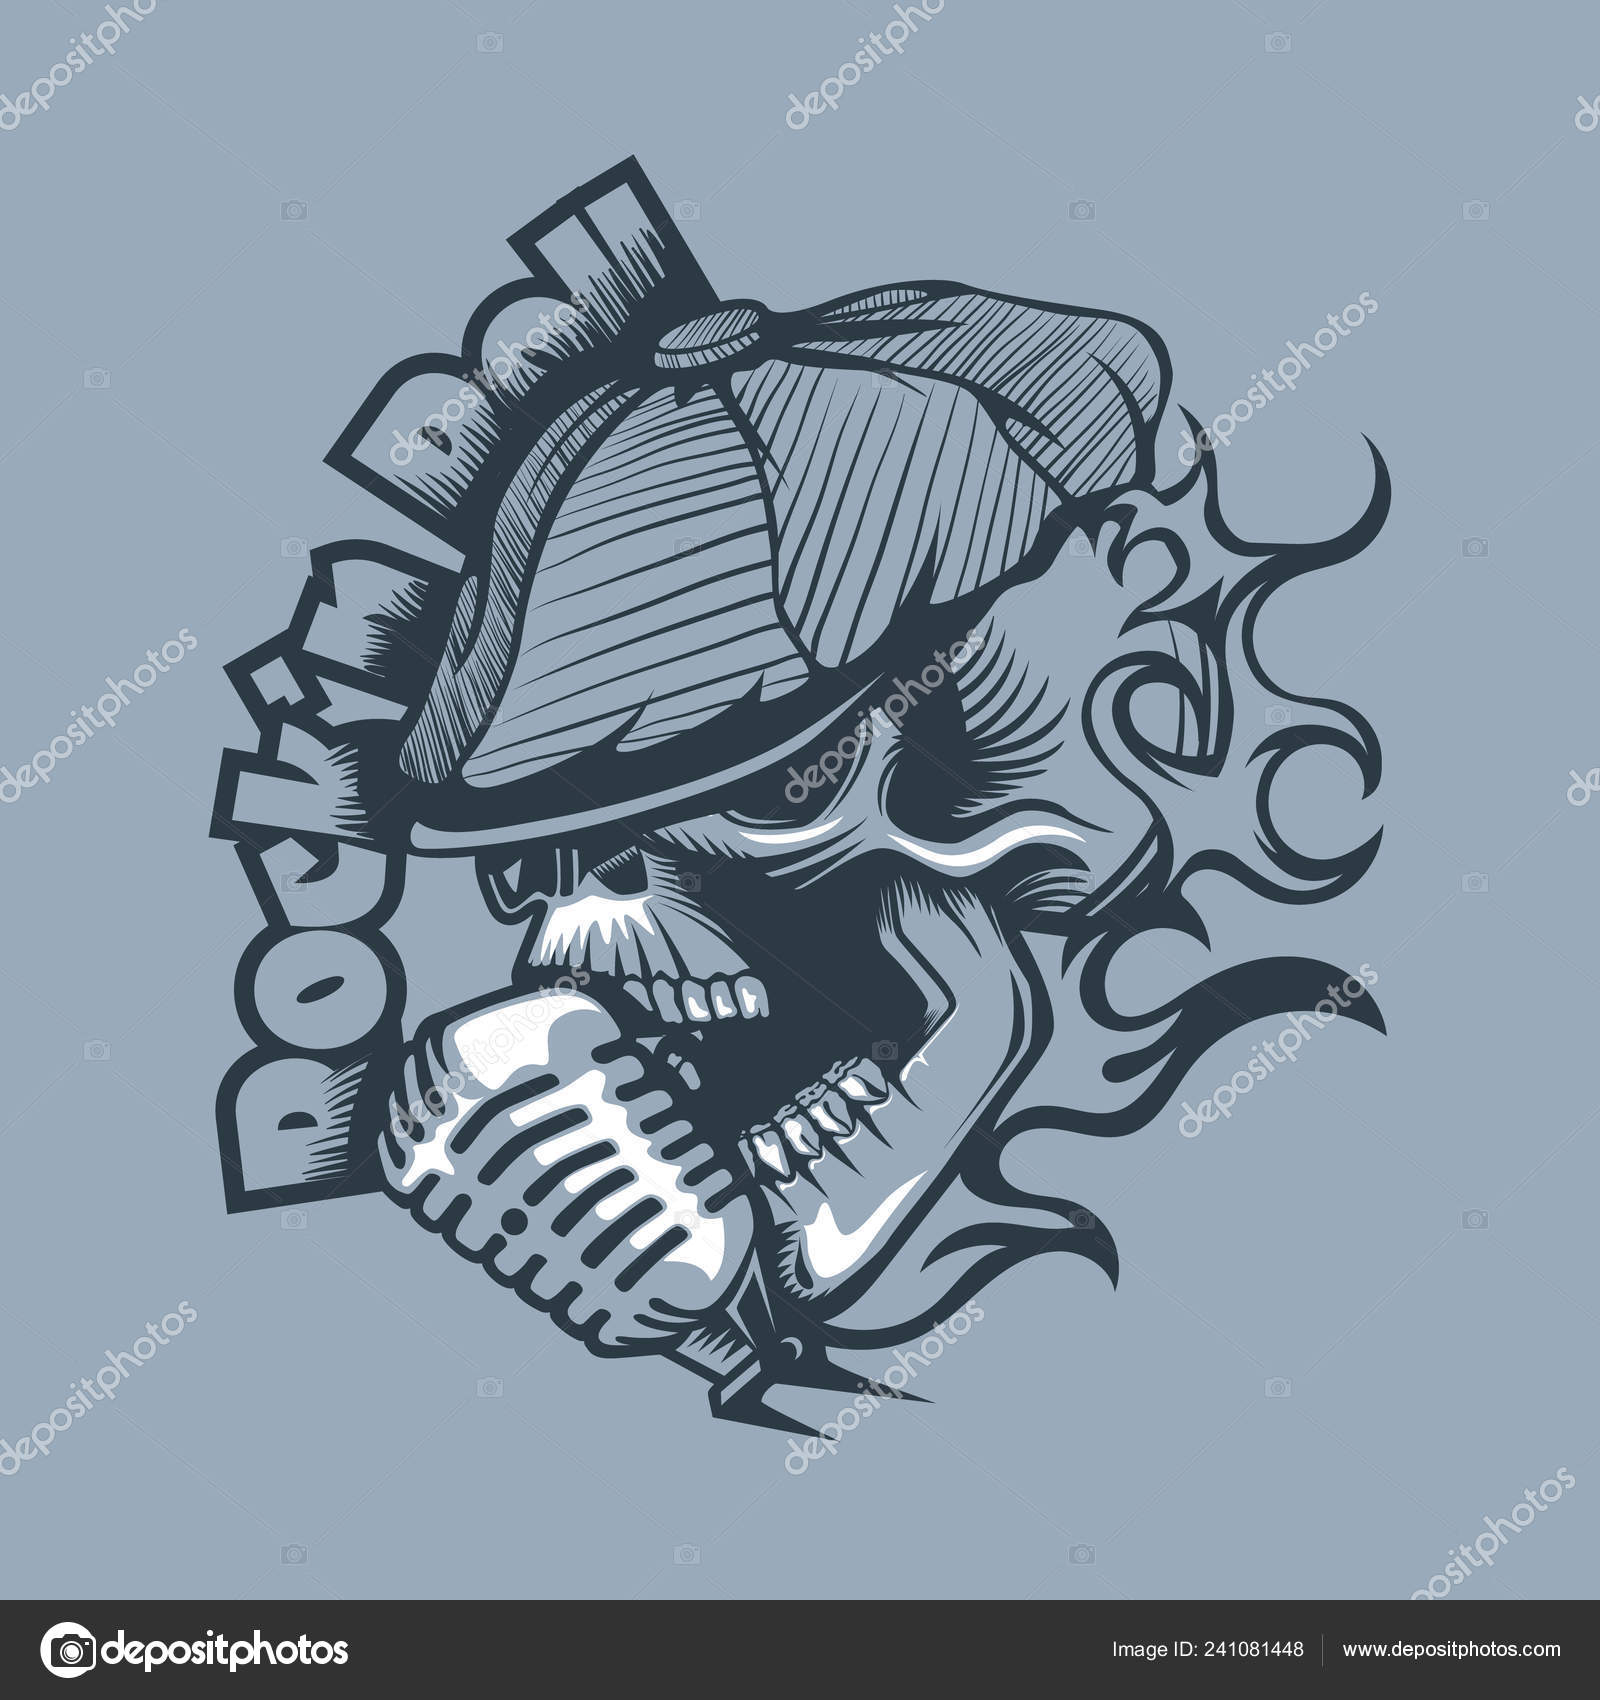 Pictures Old Style Microphone Tattoos Skull Cap Singing Microphone Tattoo Style Stock Vector C Balanslava 241081448